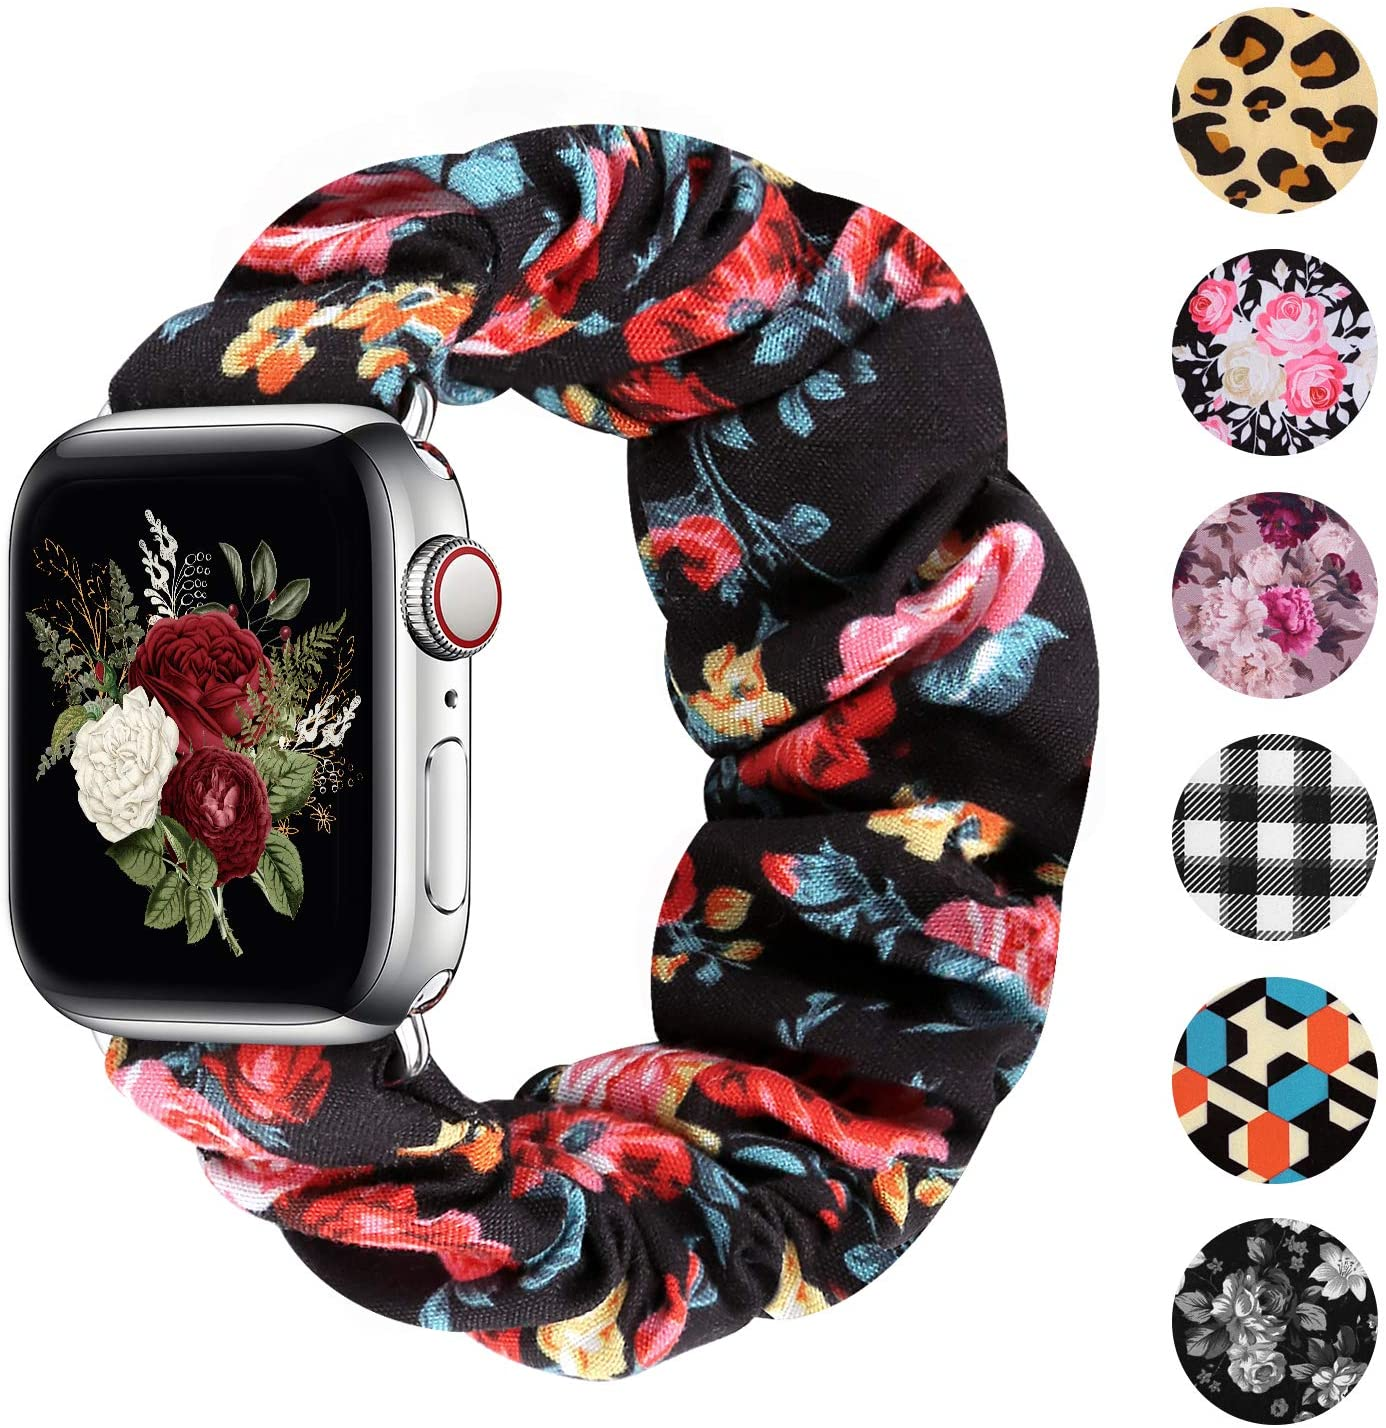 Greatfine Compatible for Apple Watch Band Scrunchie 38mm 40mm 42mm 44mm,Soft Elastic Strap Watch Bands,With iWatch Series 6 SE 5 4 3 2 1,S L Printing Replacement Wristband for Women Men(38/40mm-S)